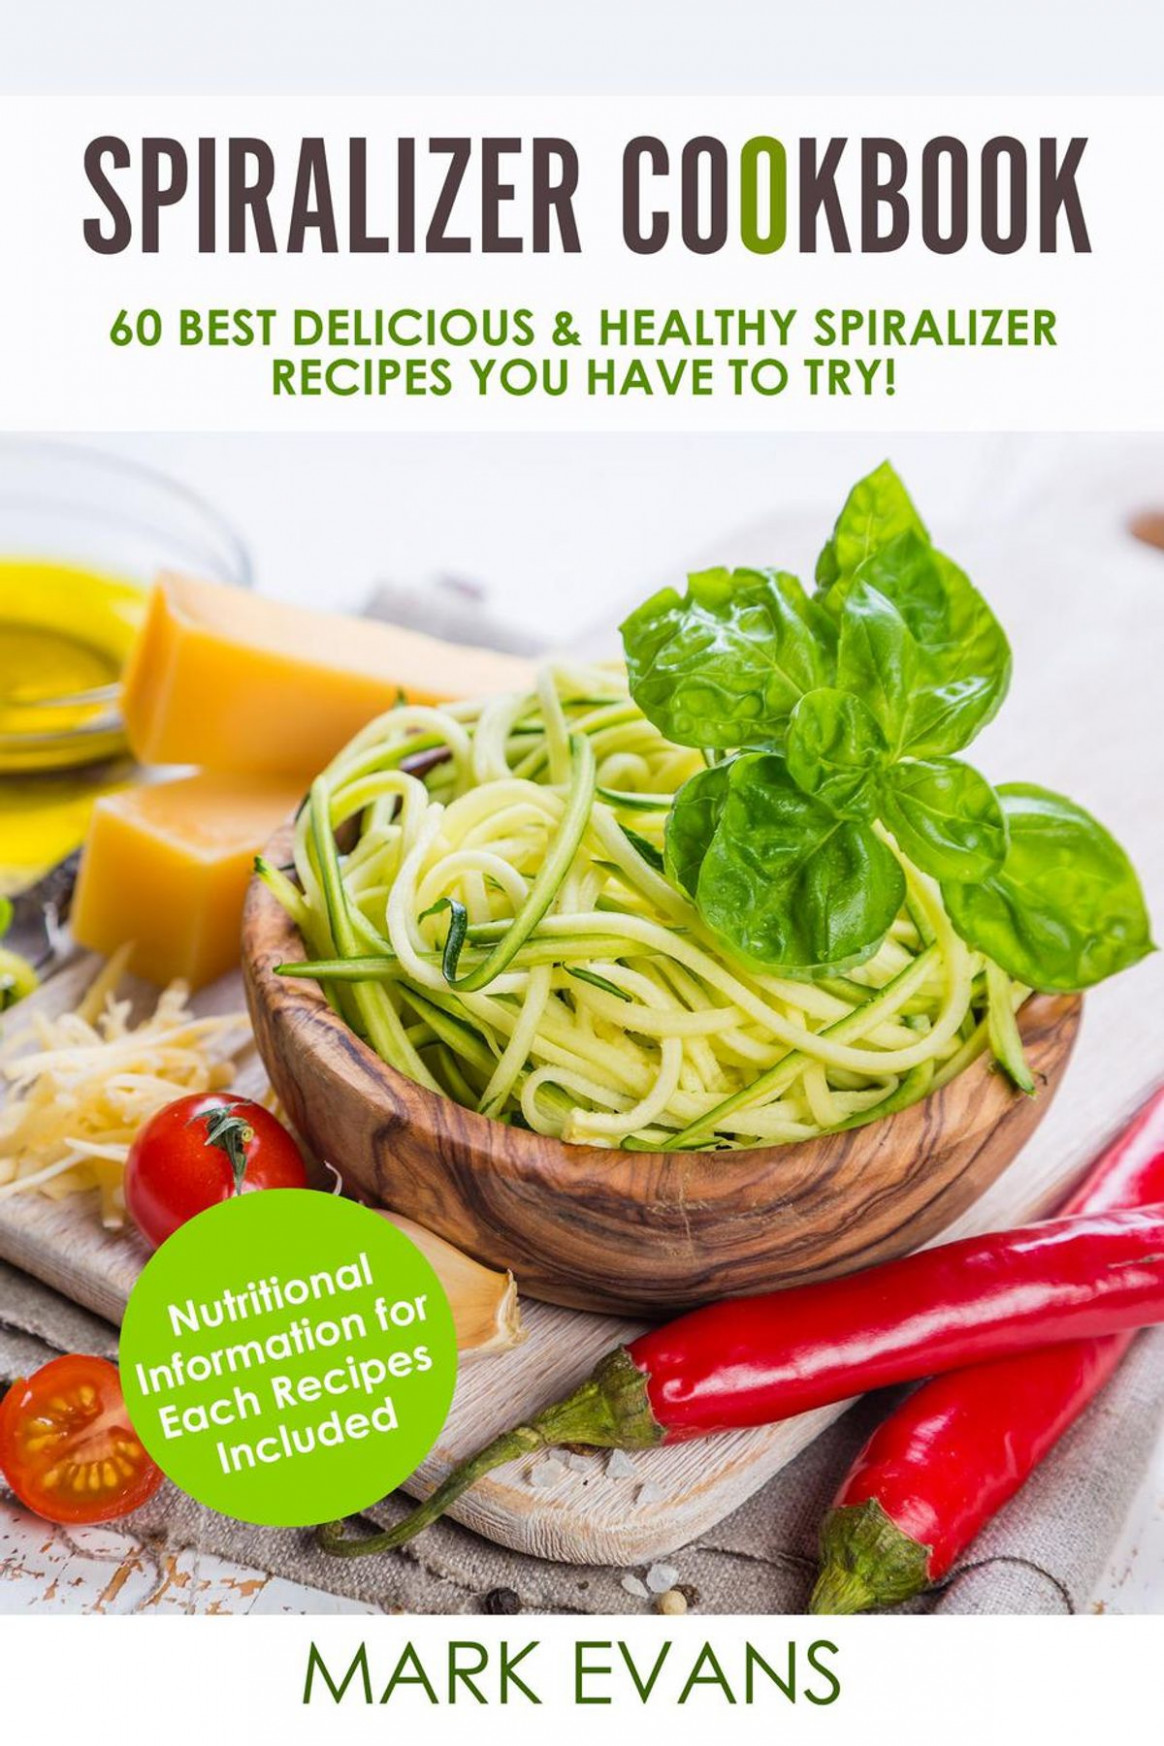 Spiralizer Cookbook : 14 Best Delicious & Healthy Spiralizer Recipes You  Have to Try! ebook by Mark Evans - Rakuten Kobo - tom kerridge healthy recipes